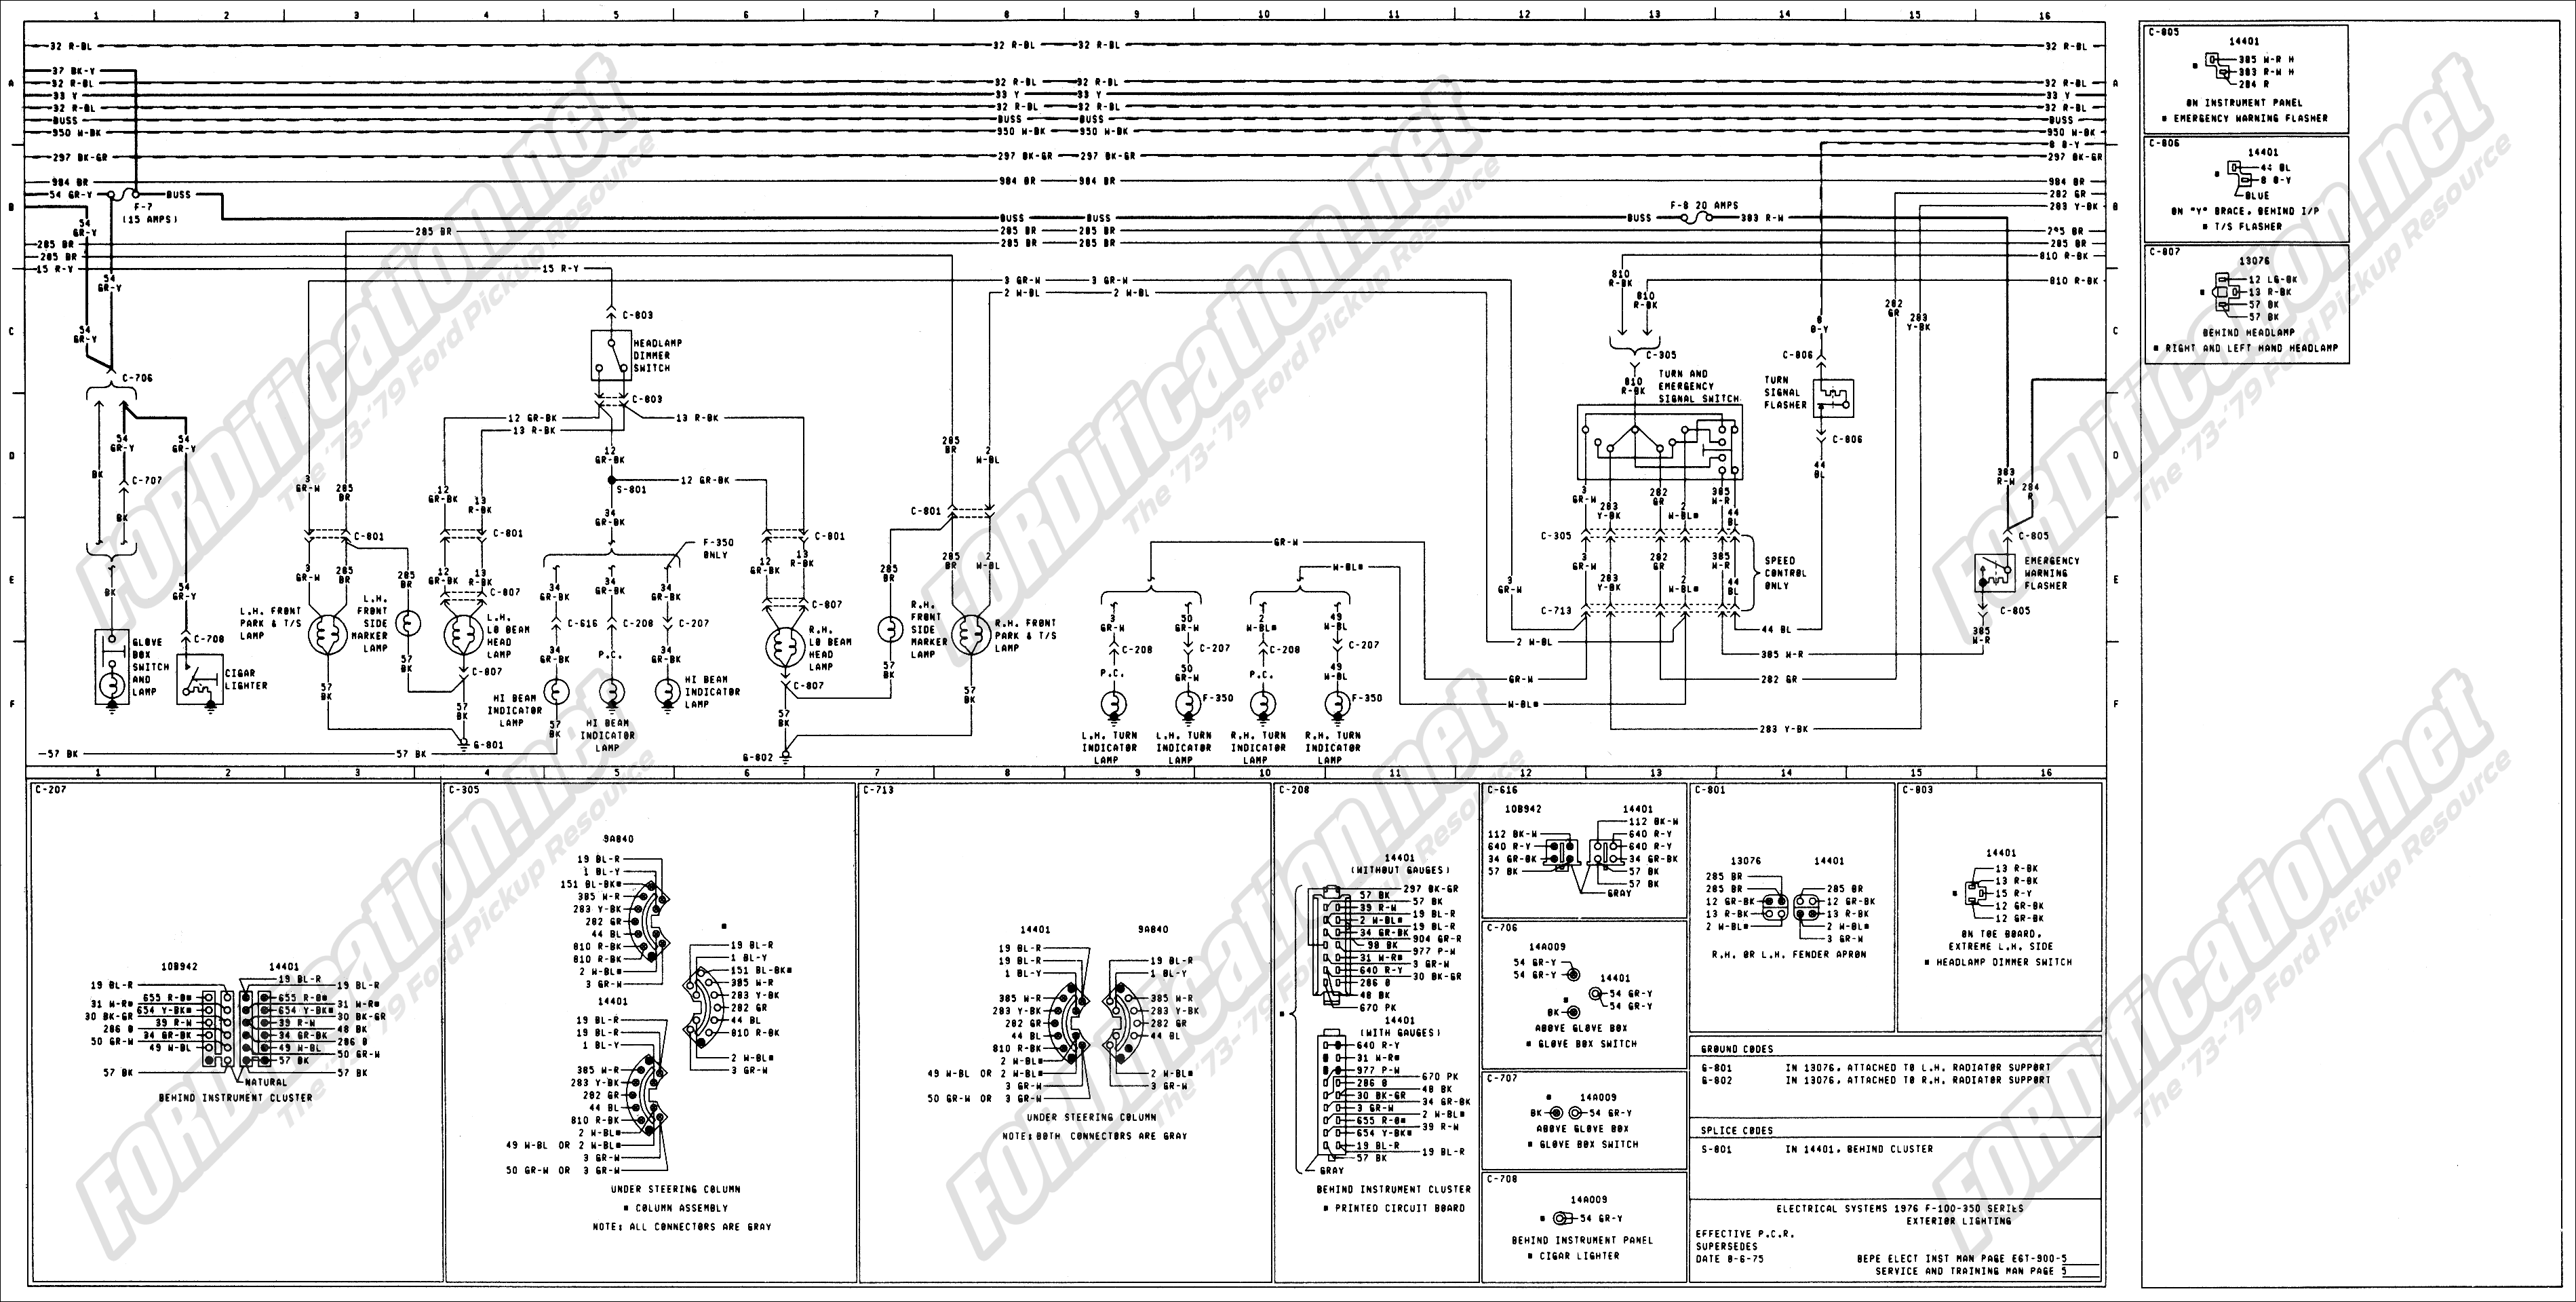 1973 1979 ford truck wiring diagrams schematics fordification net rh fordification net 1977 ford f150 ignition switch wiring diagram 1977 ford f150 ignition wiring diagram